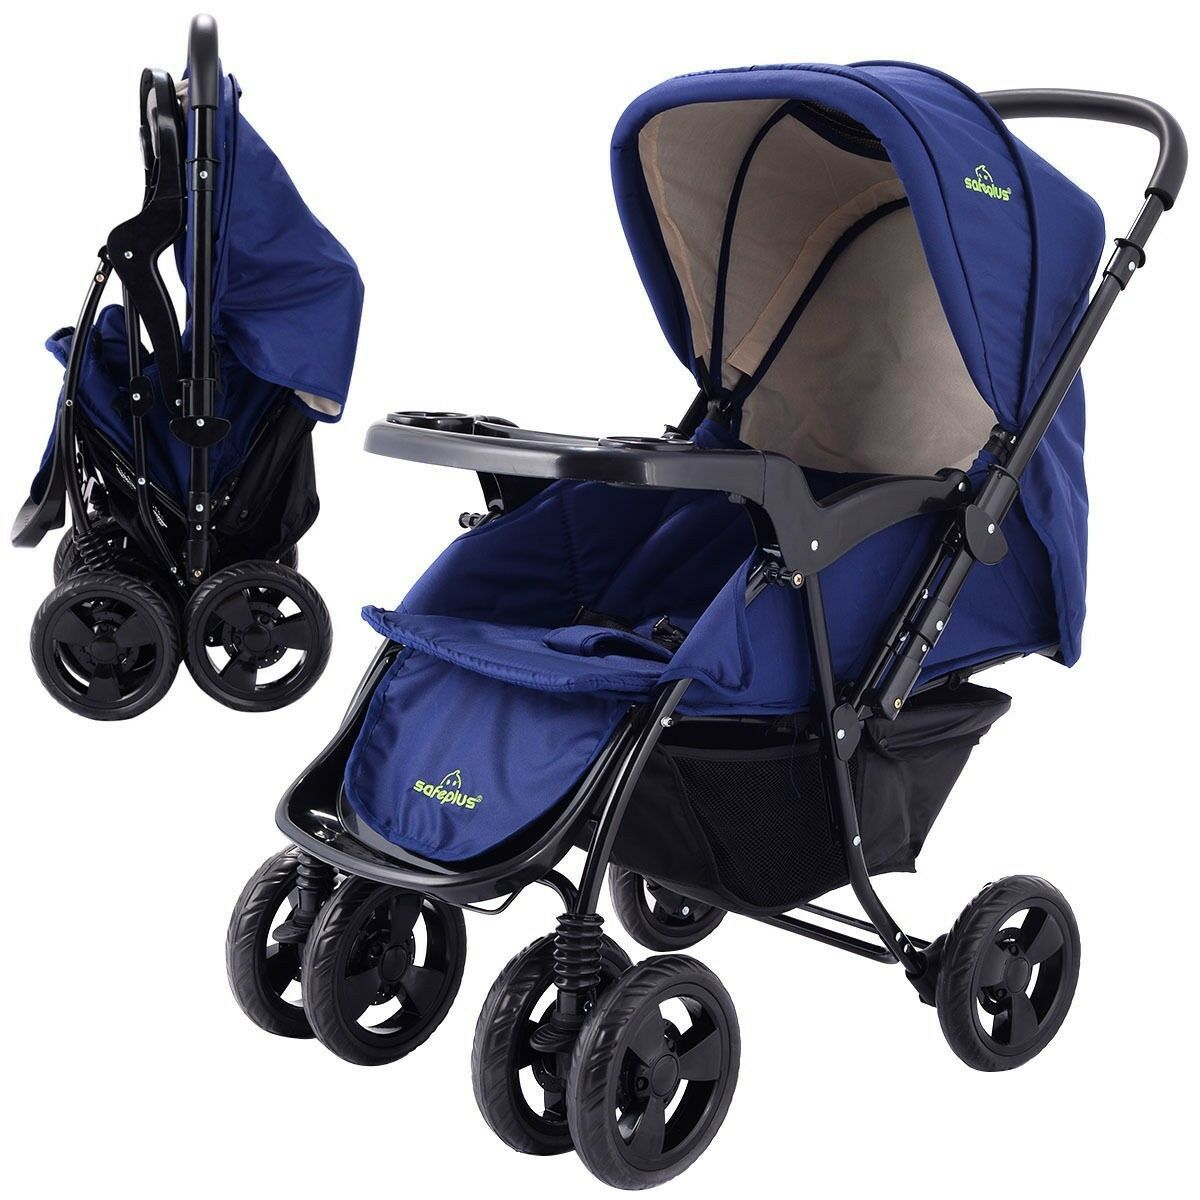 Details about Two Way Foldable Baby Kids Travel Stroller